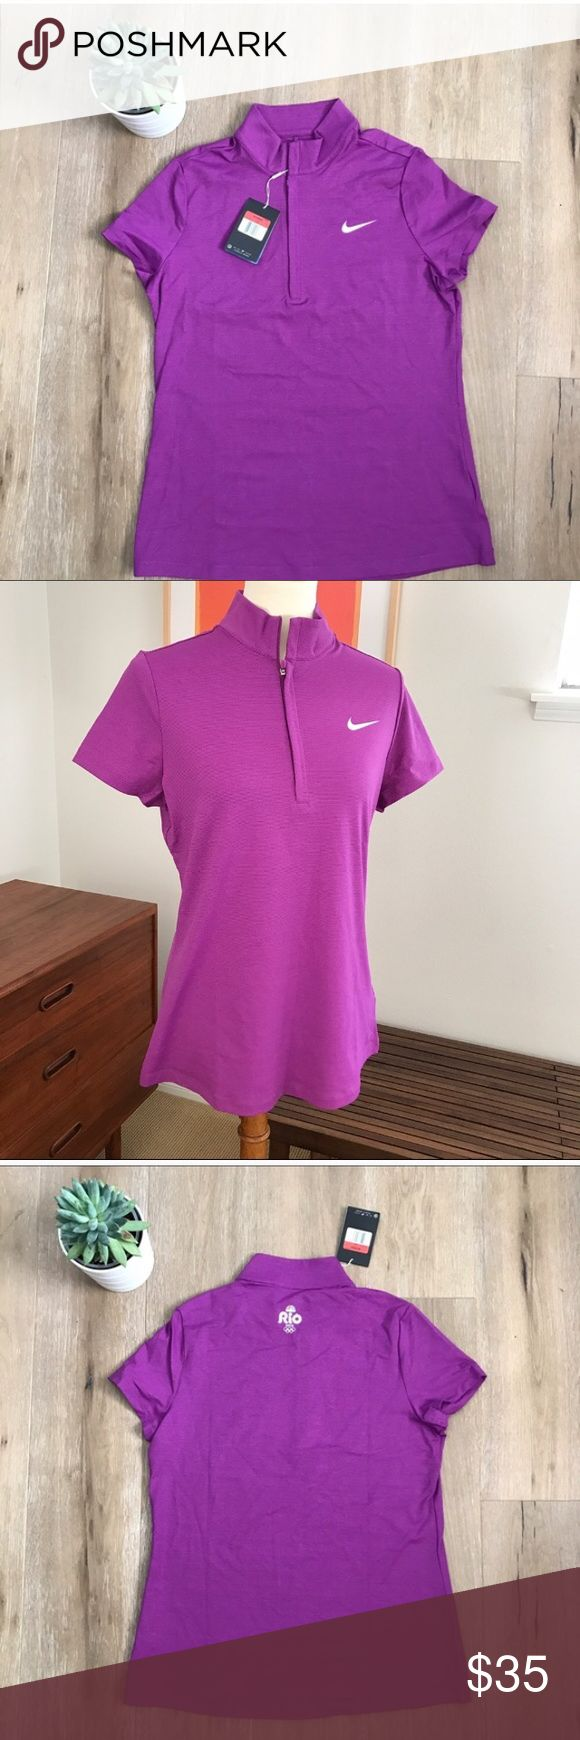 "NWT Nike Golf shirt 👚 from Rio 2016 Olympic Games NWT Nike Golf shirt 👚 from Rio 2016 Olympic games. Size Large. Zipper collar. Collectors item. Bust 19"" Length 26"". Bundle and save! Nike Tops Tees - Short Sleeve"